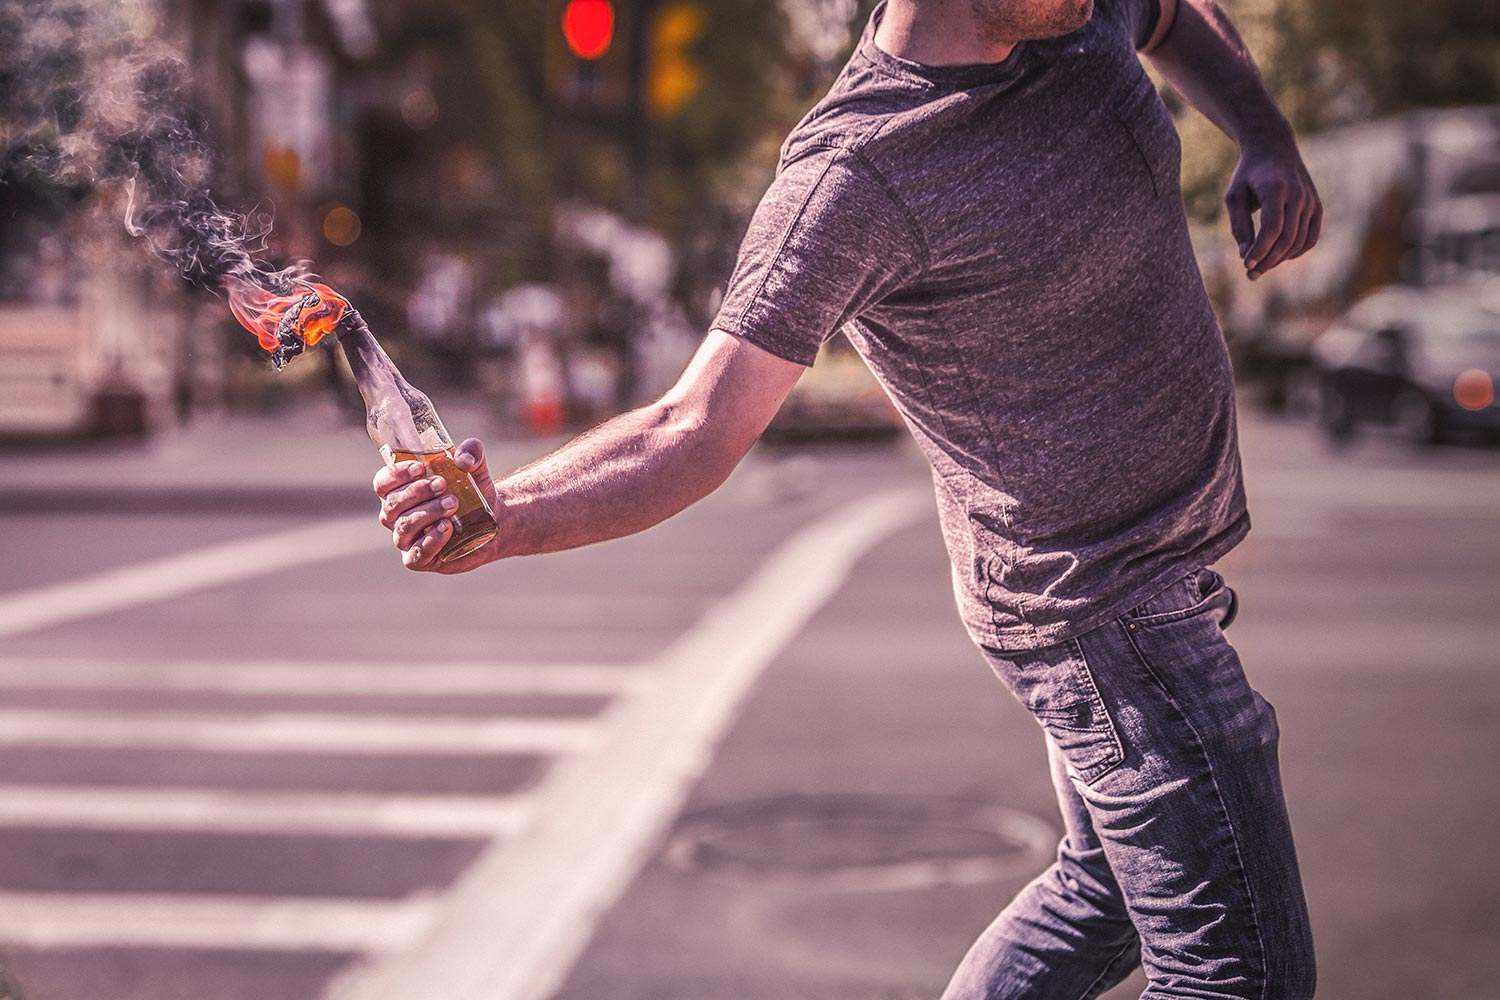 man throwing a molotov cocktail, anarchy